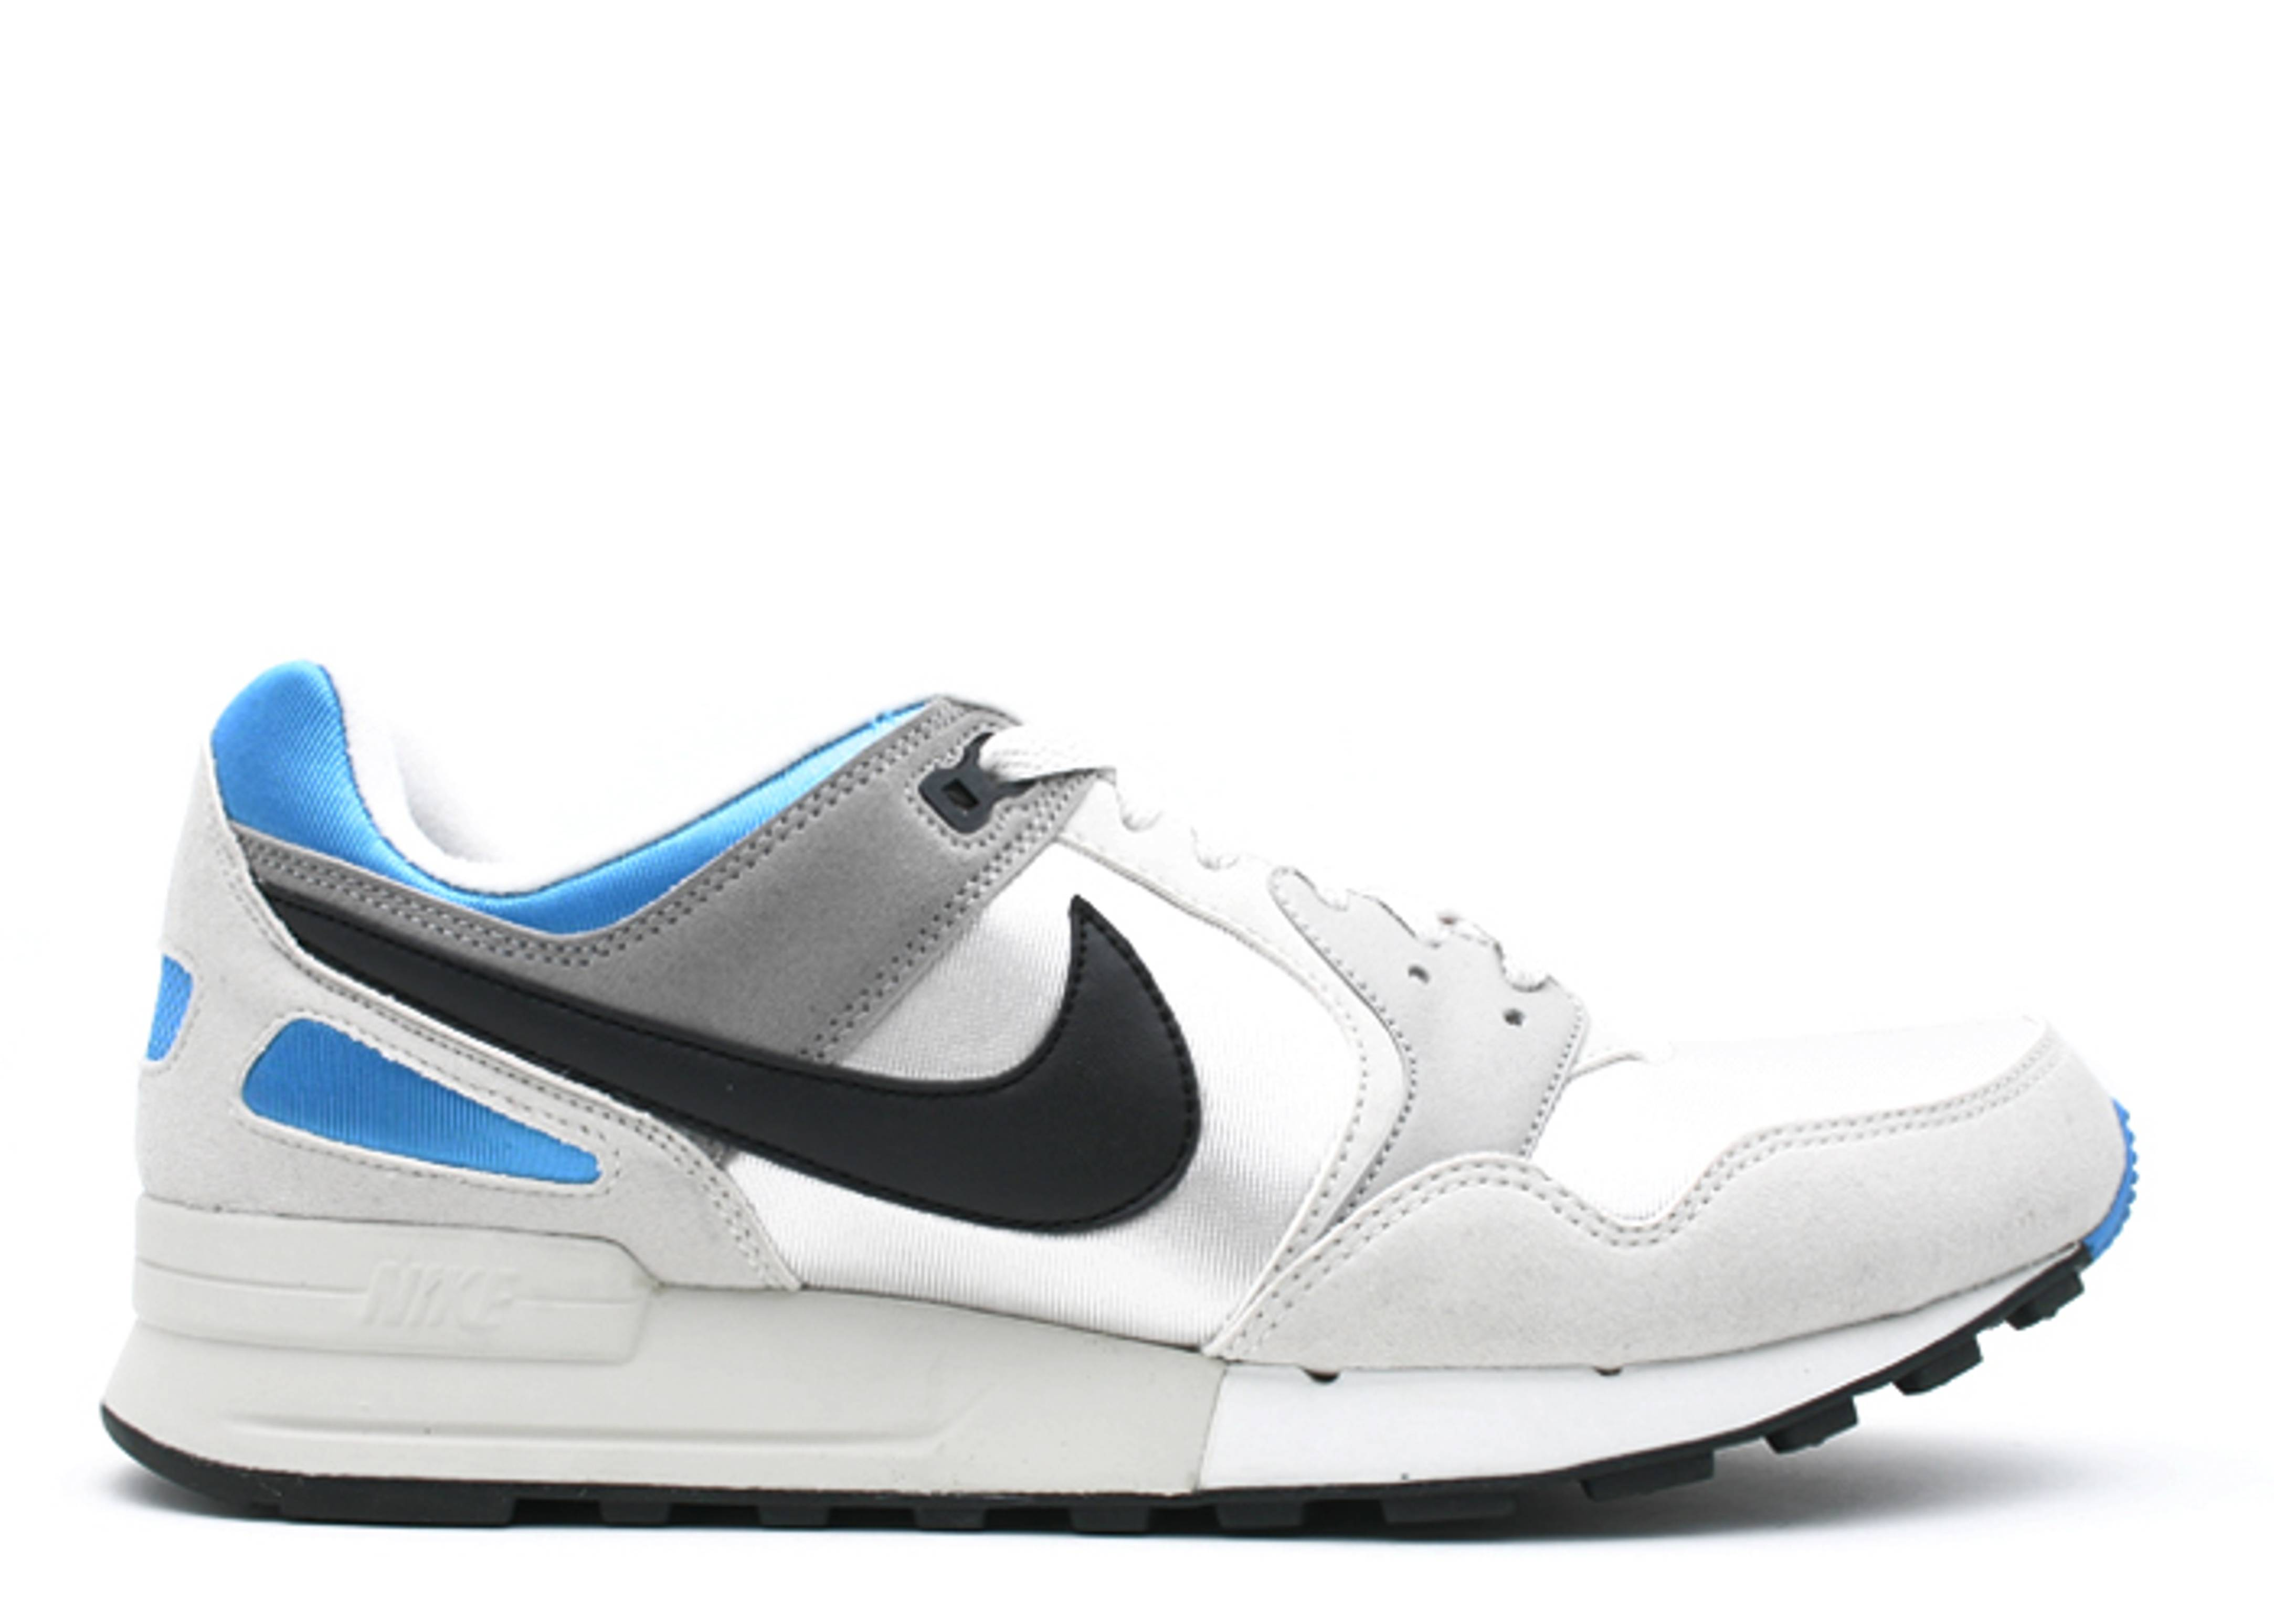 premium selection 7d784 da2bb Air Pegasus 89 - Nike - 344082 001 - light boneblck-wd bl-lght tp  Flight  Club